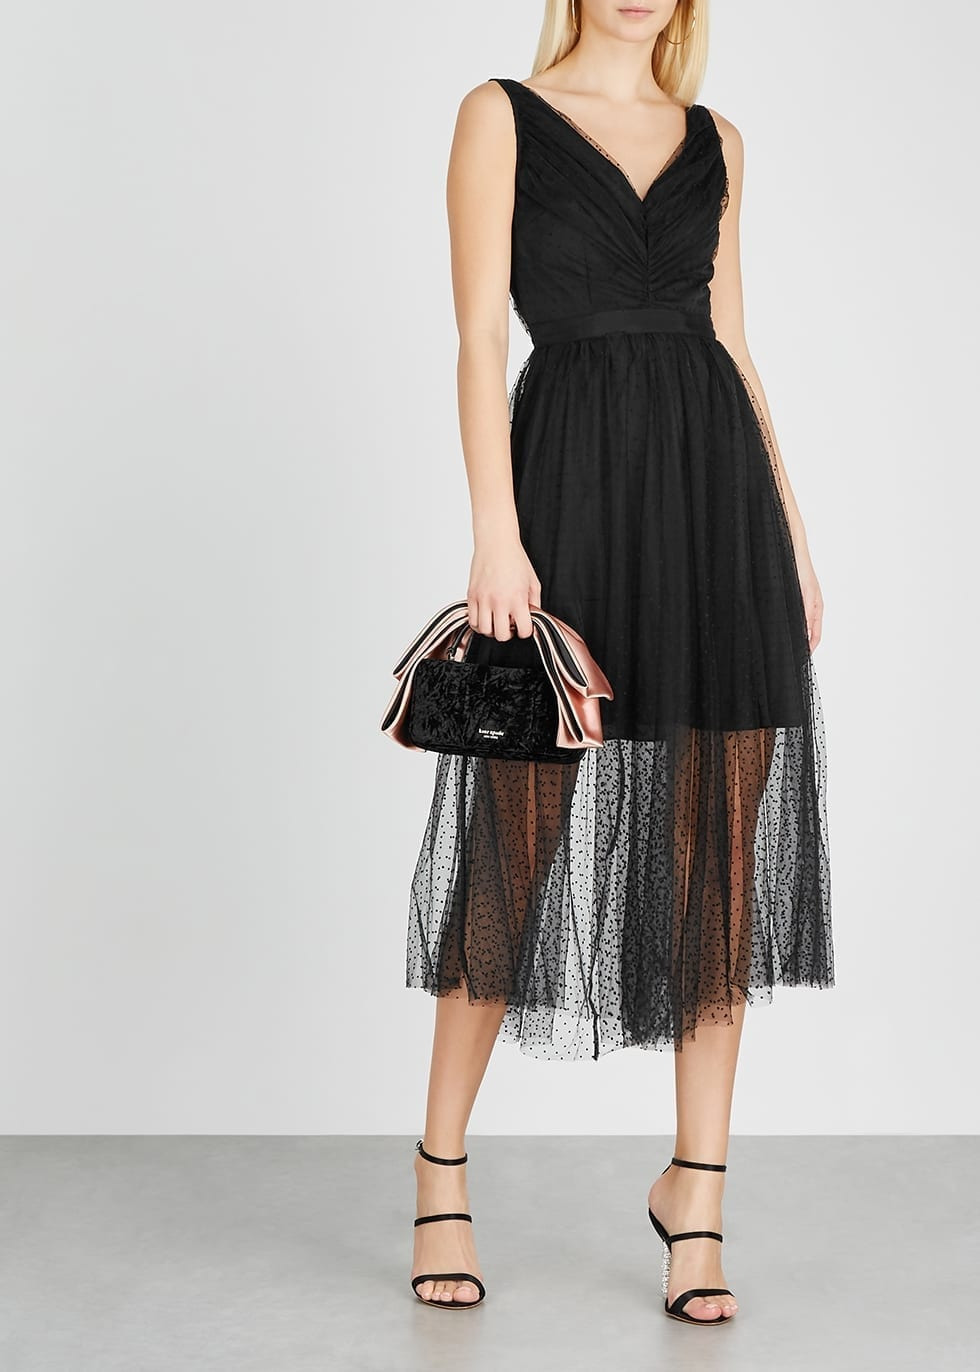 KEEPSAKE See You Black Tulle Dress